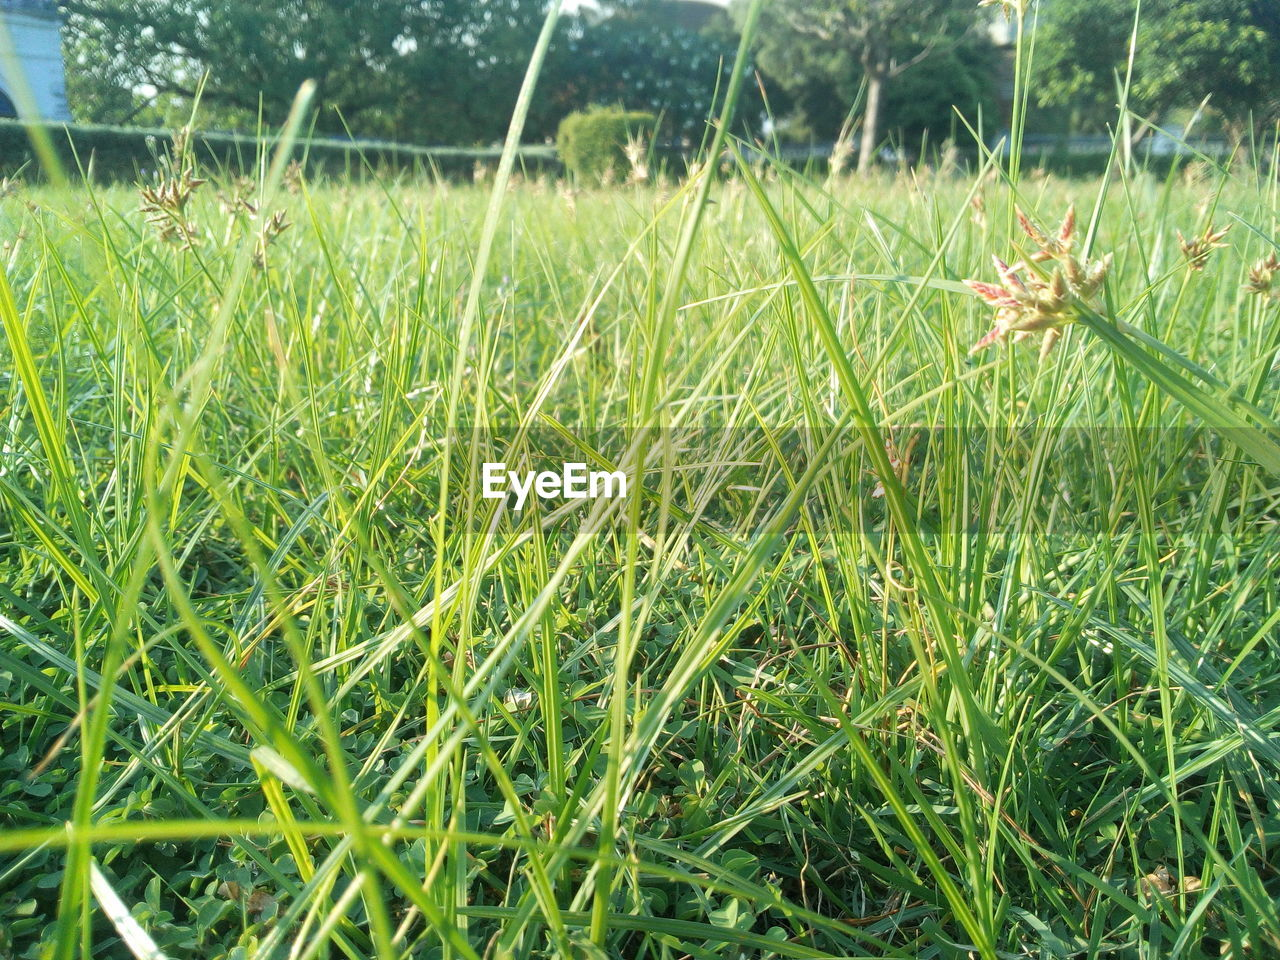 plant, grass, growth, green color, field, land, nature, beauty in nature, day, tranquility, close-up, focus on foreground, no people, landscape, outdoors, freshness, blade of grass, tranquil scene, agriculture, rural scene